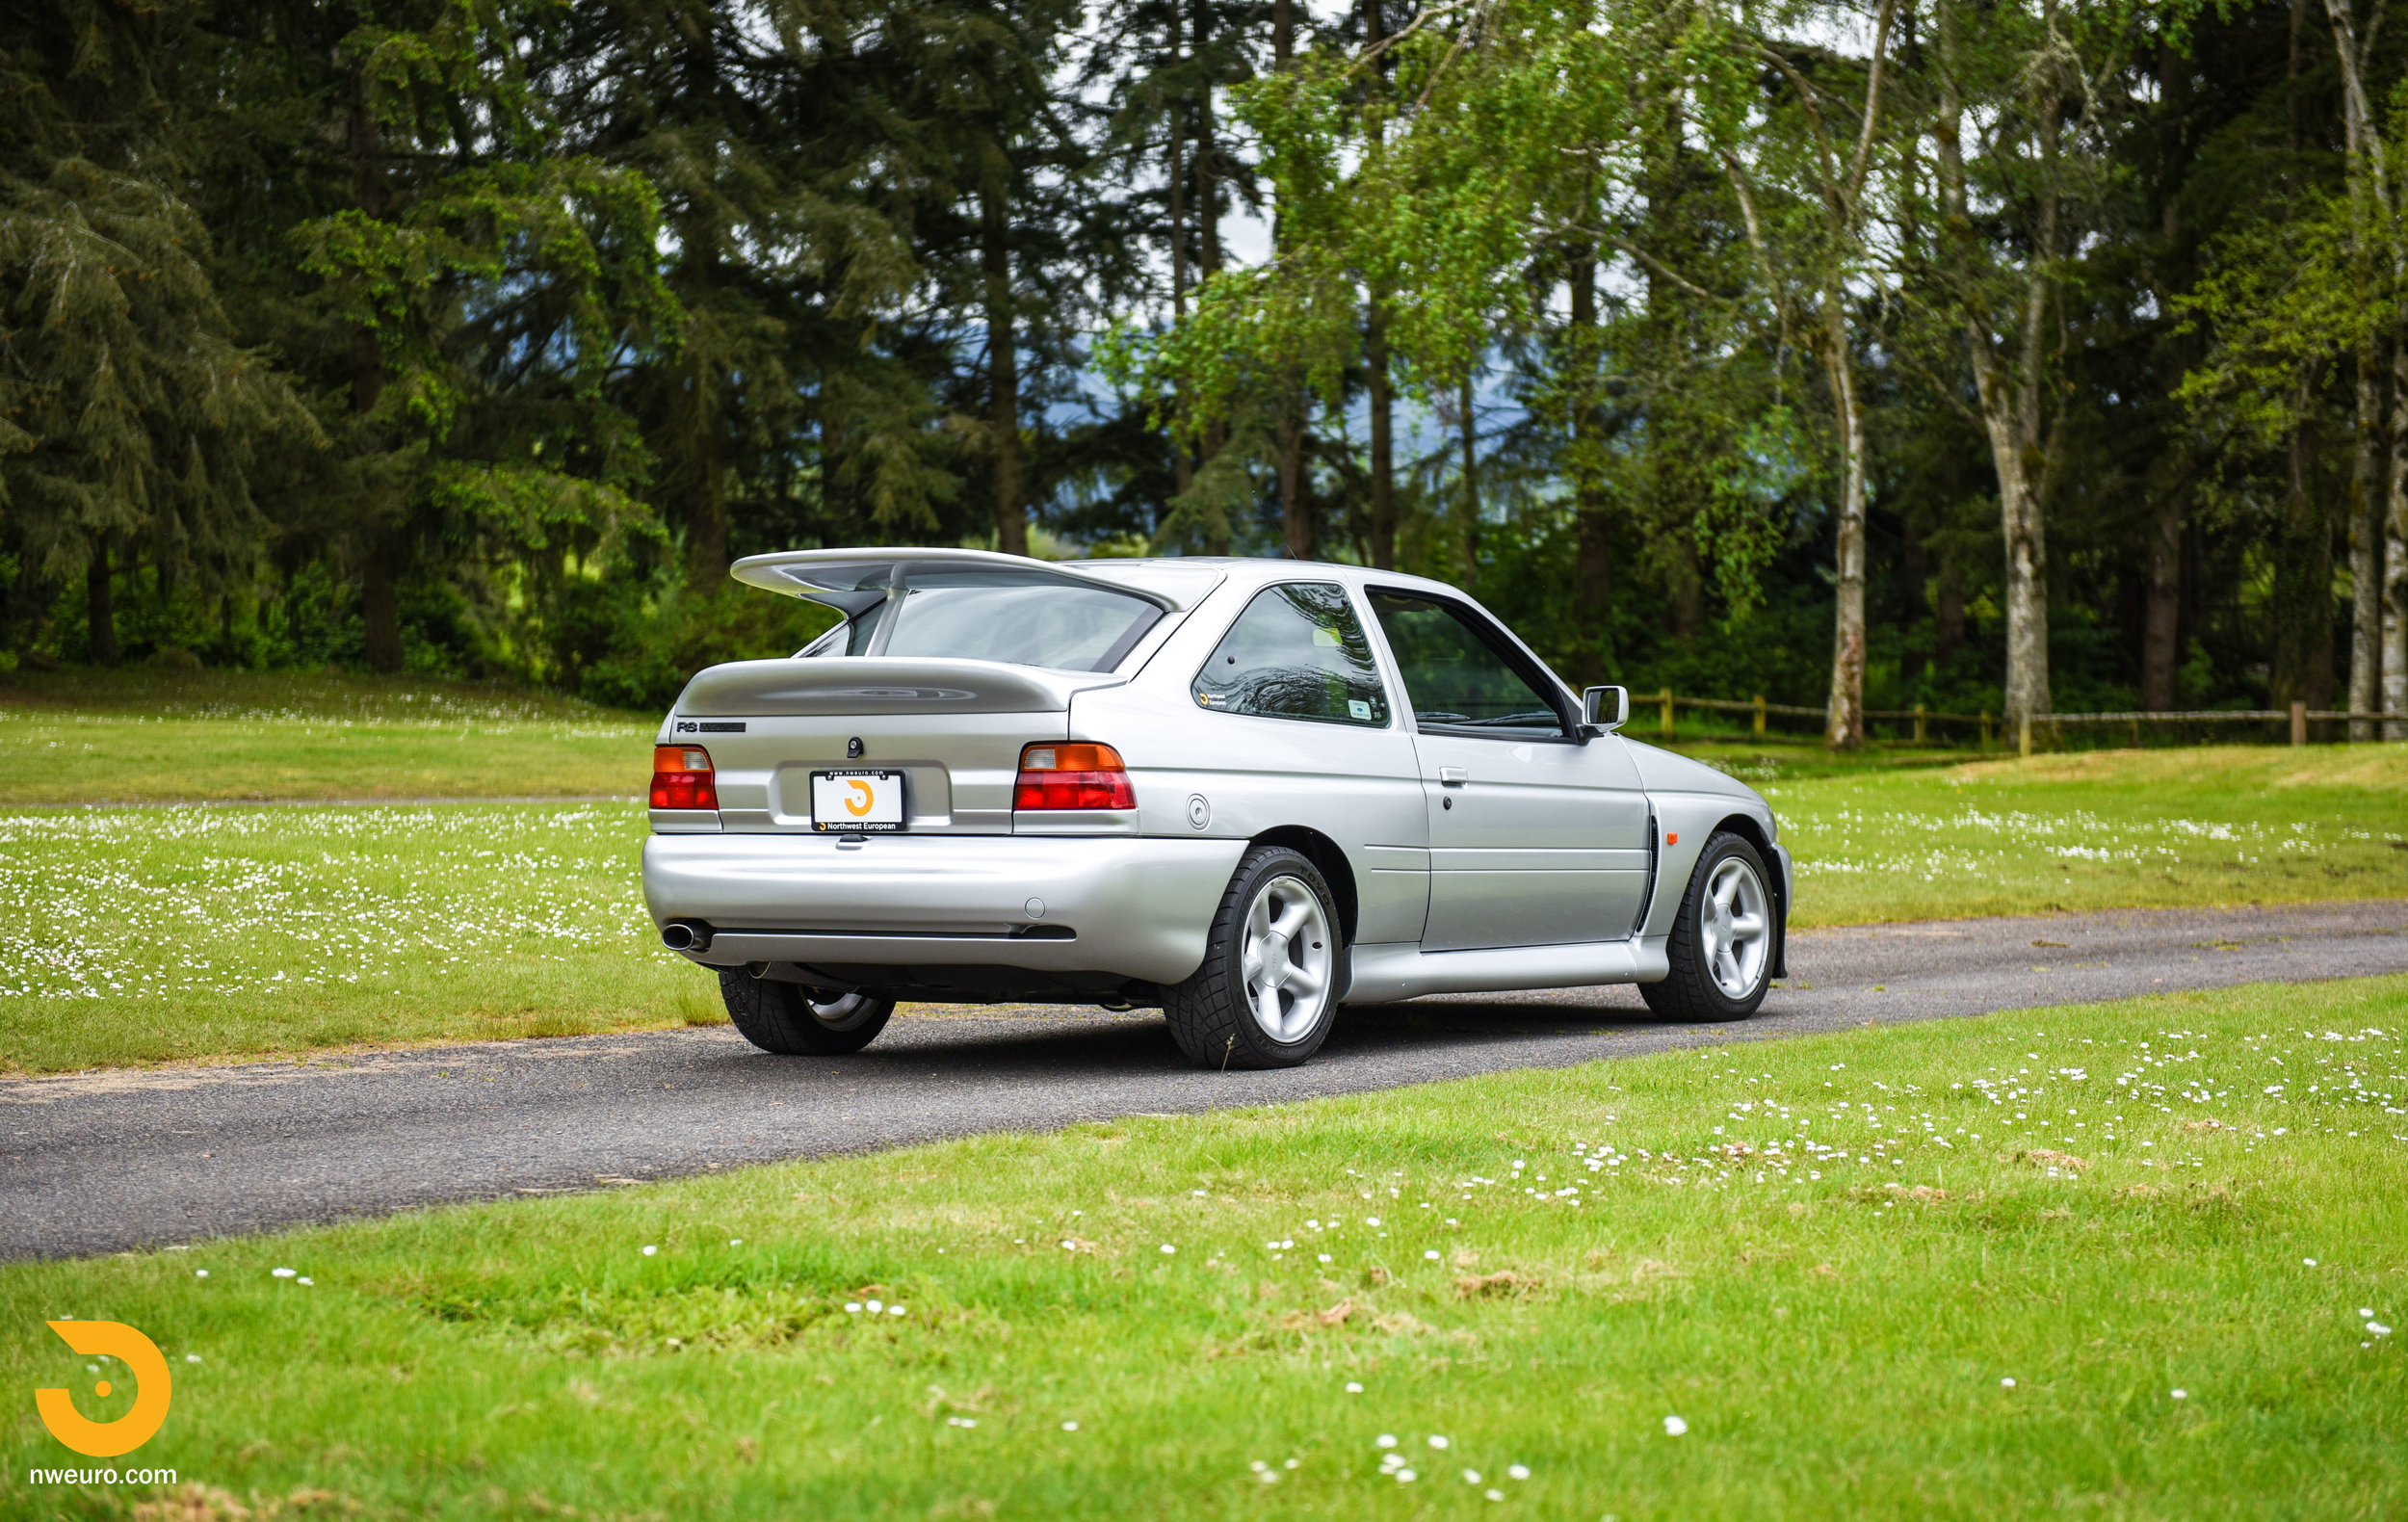 1995 Ford Escort Cosworth RS Silver-4.jpg